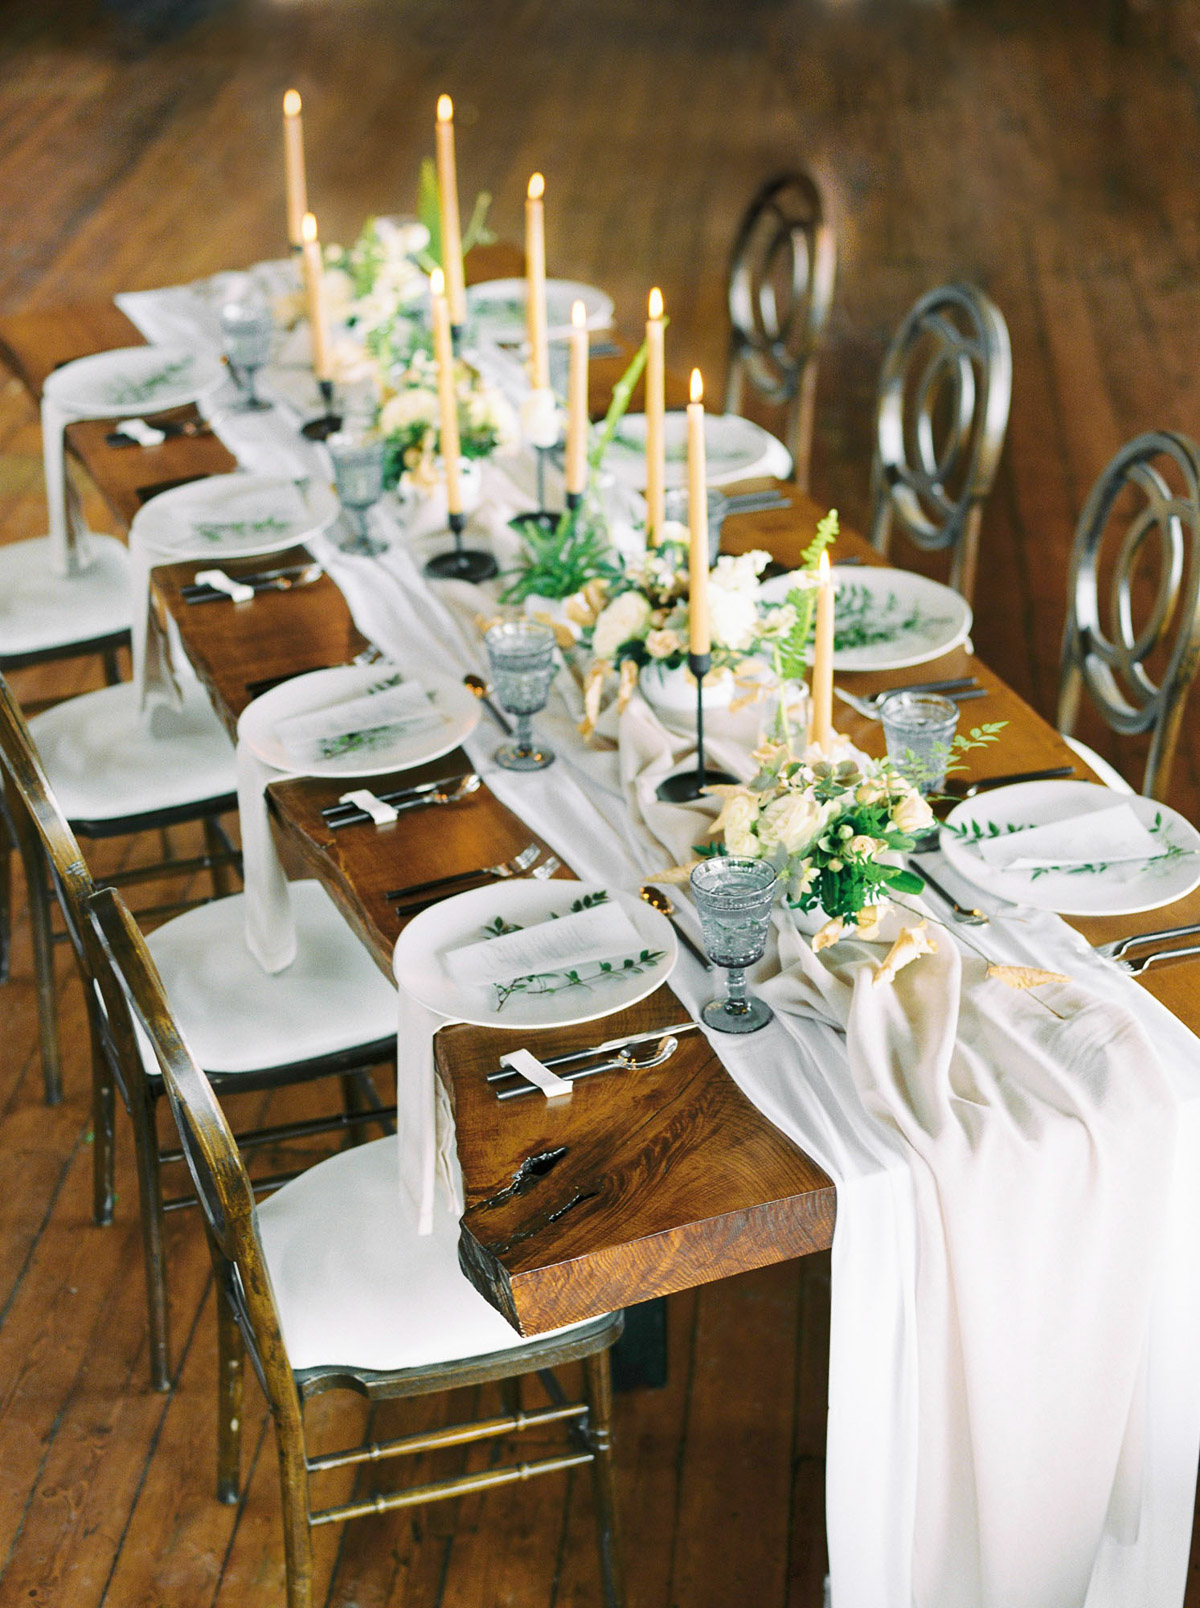 will-reid-photo-vineyard-bride-swish-list-kurtz-orchards-market-niagara-on-the-lake-wedding-editorial-11.jpg